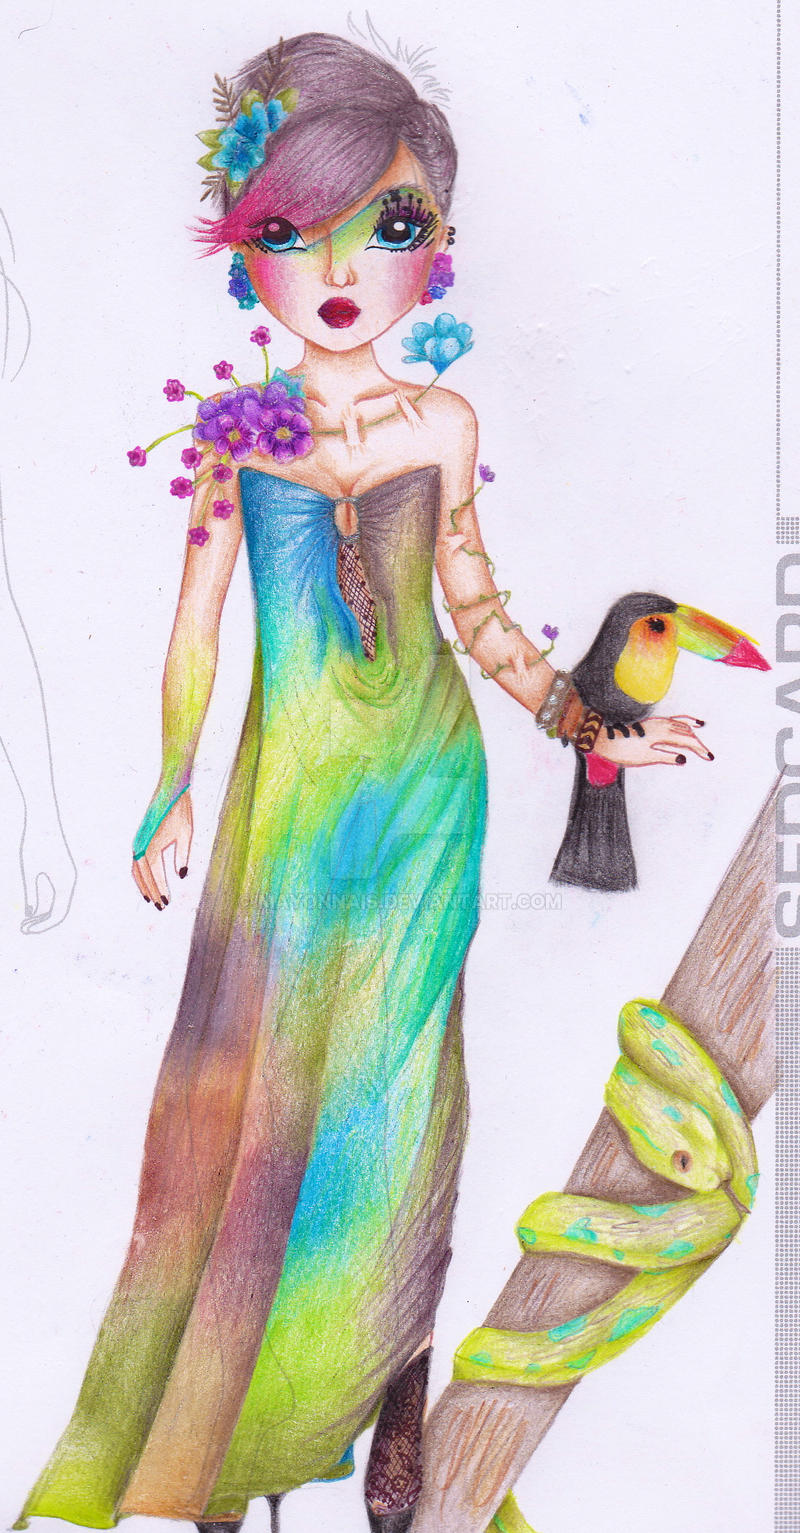 For jungle compitition by mayonnais on deviantart - Dessin top model biz ...